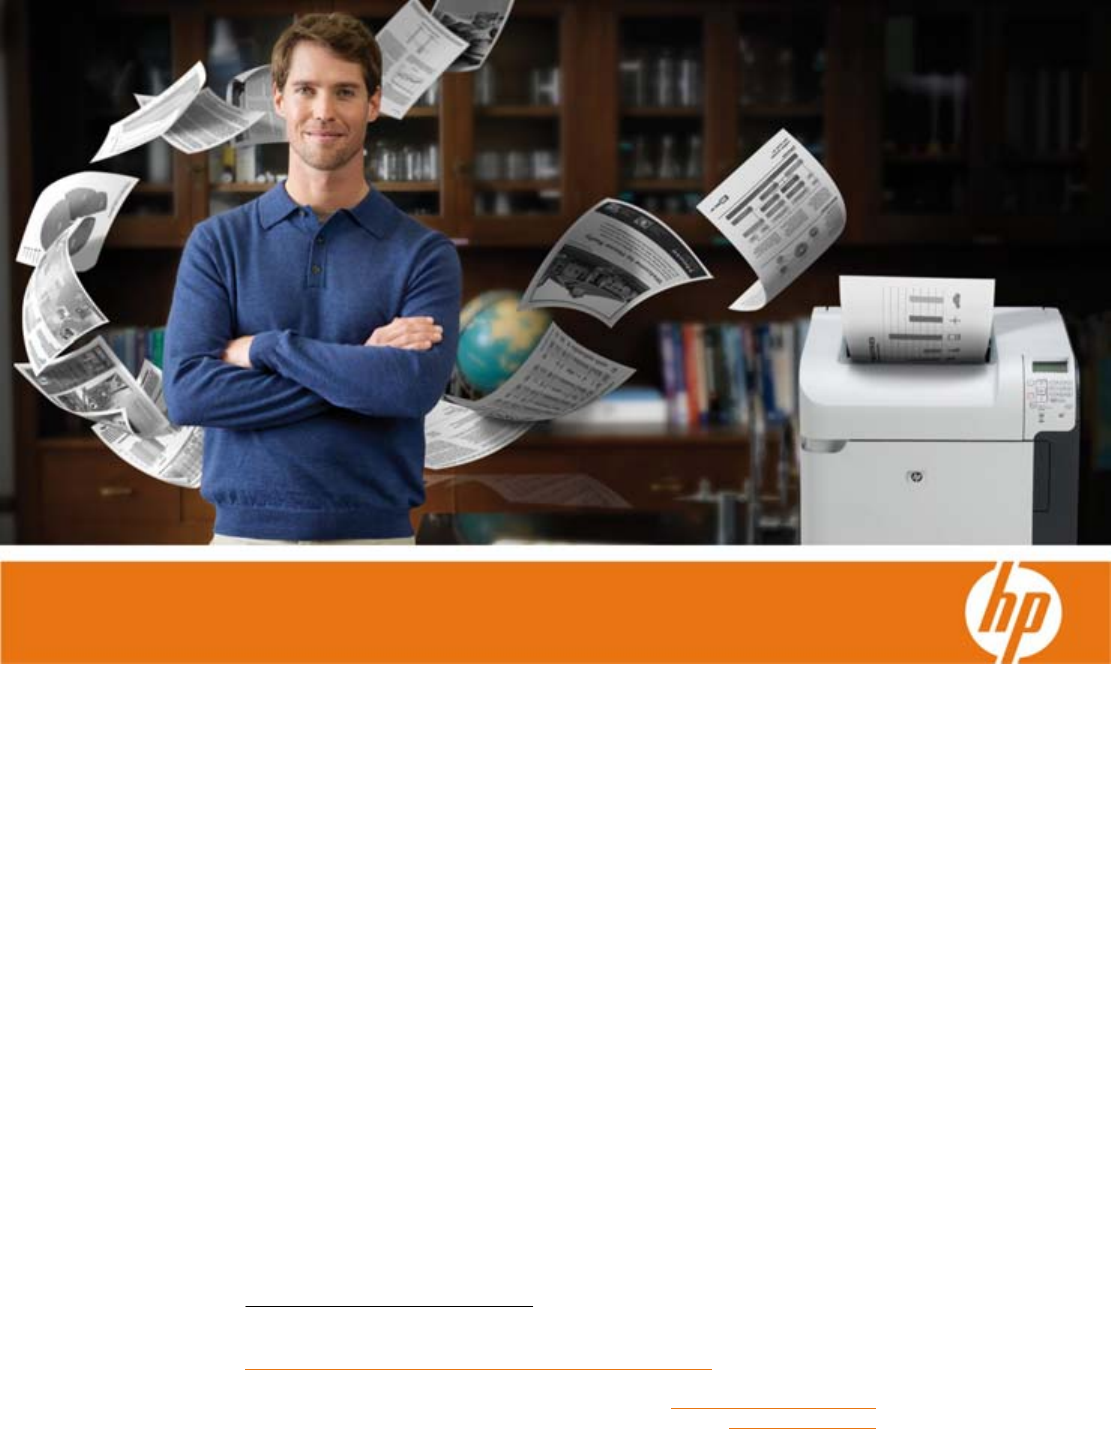 hewlett packard company network printer design for universality Hewlett packard enterprise unifies wired and wireless networking to create superior design, deliver, and run a hewlett packard enterprise company.